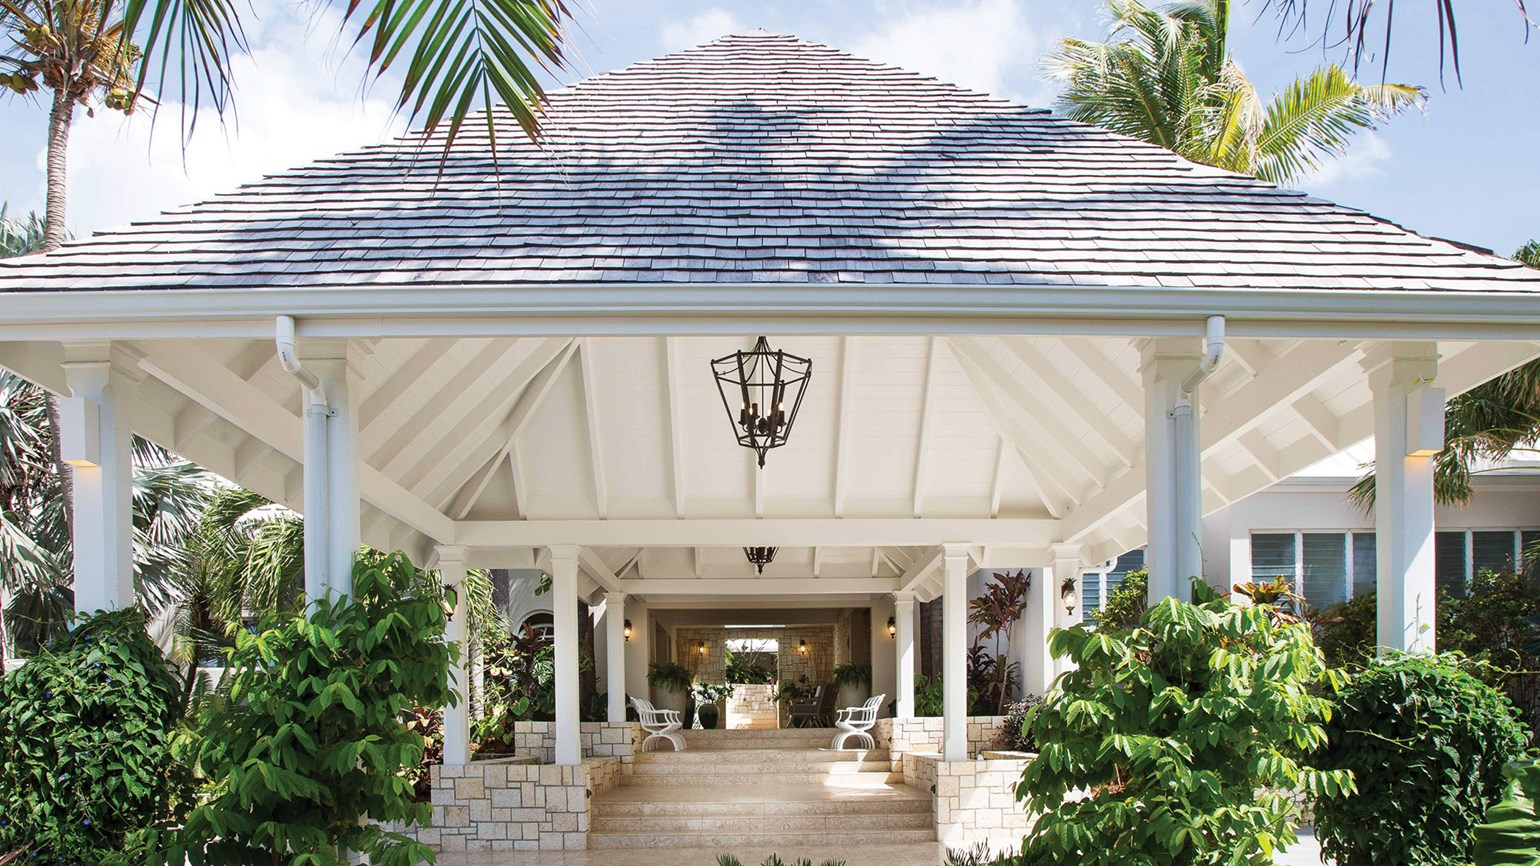 Curtain Bluff renovations leave charm intact: Travel Weekly